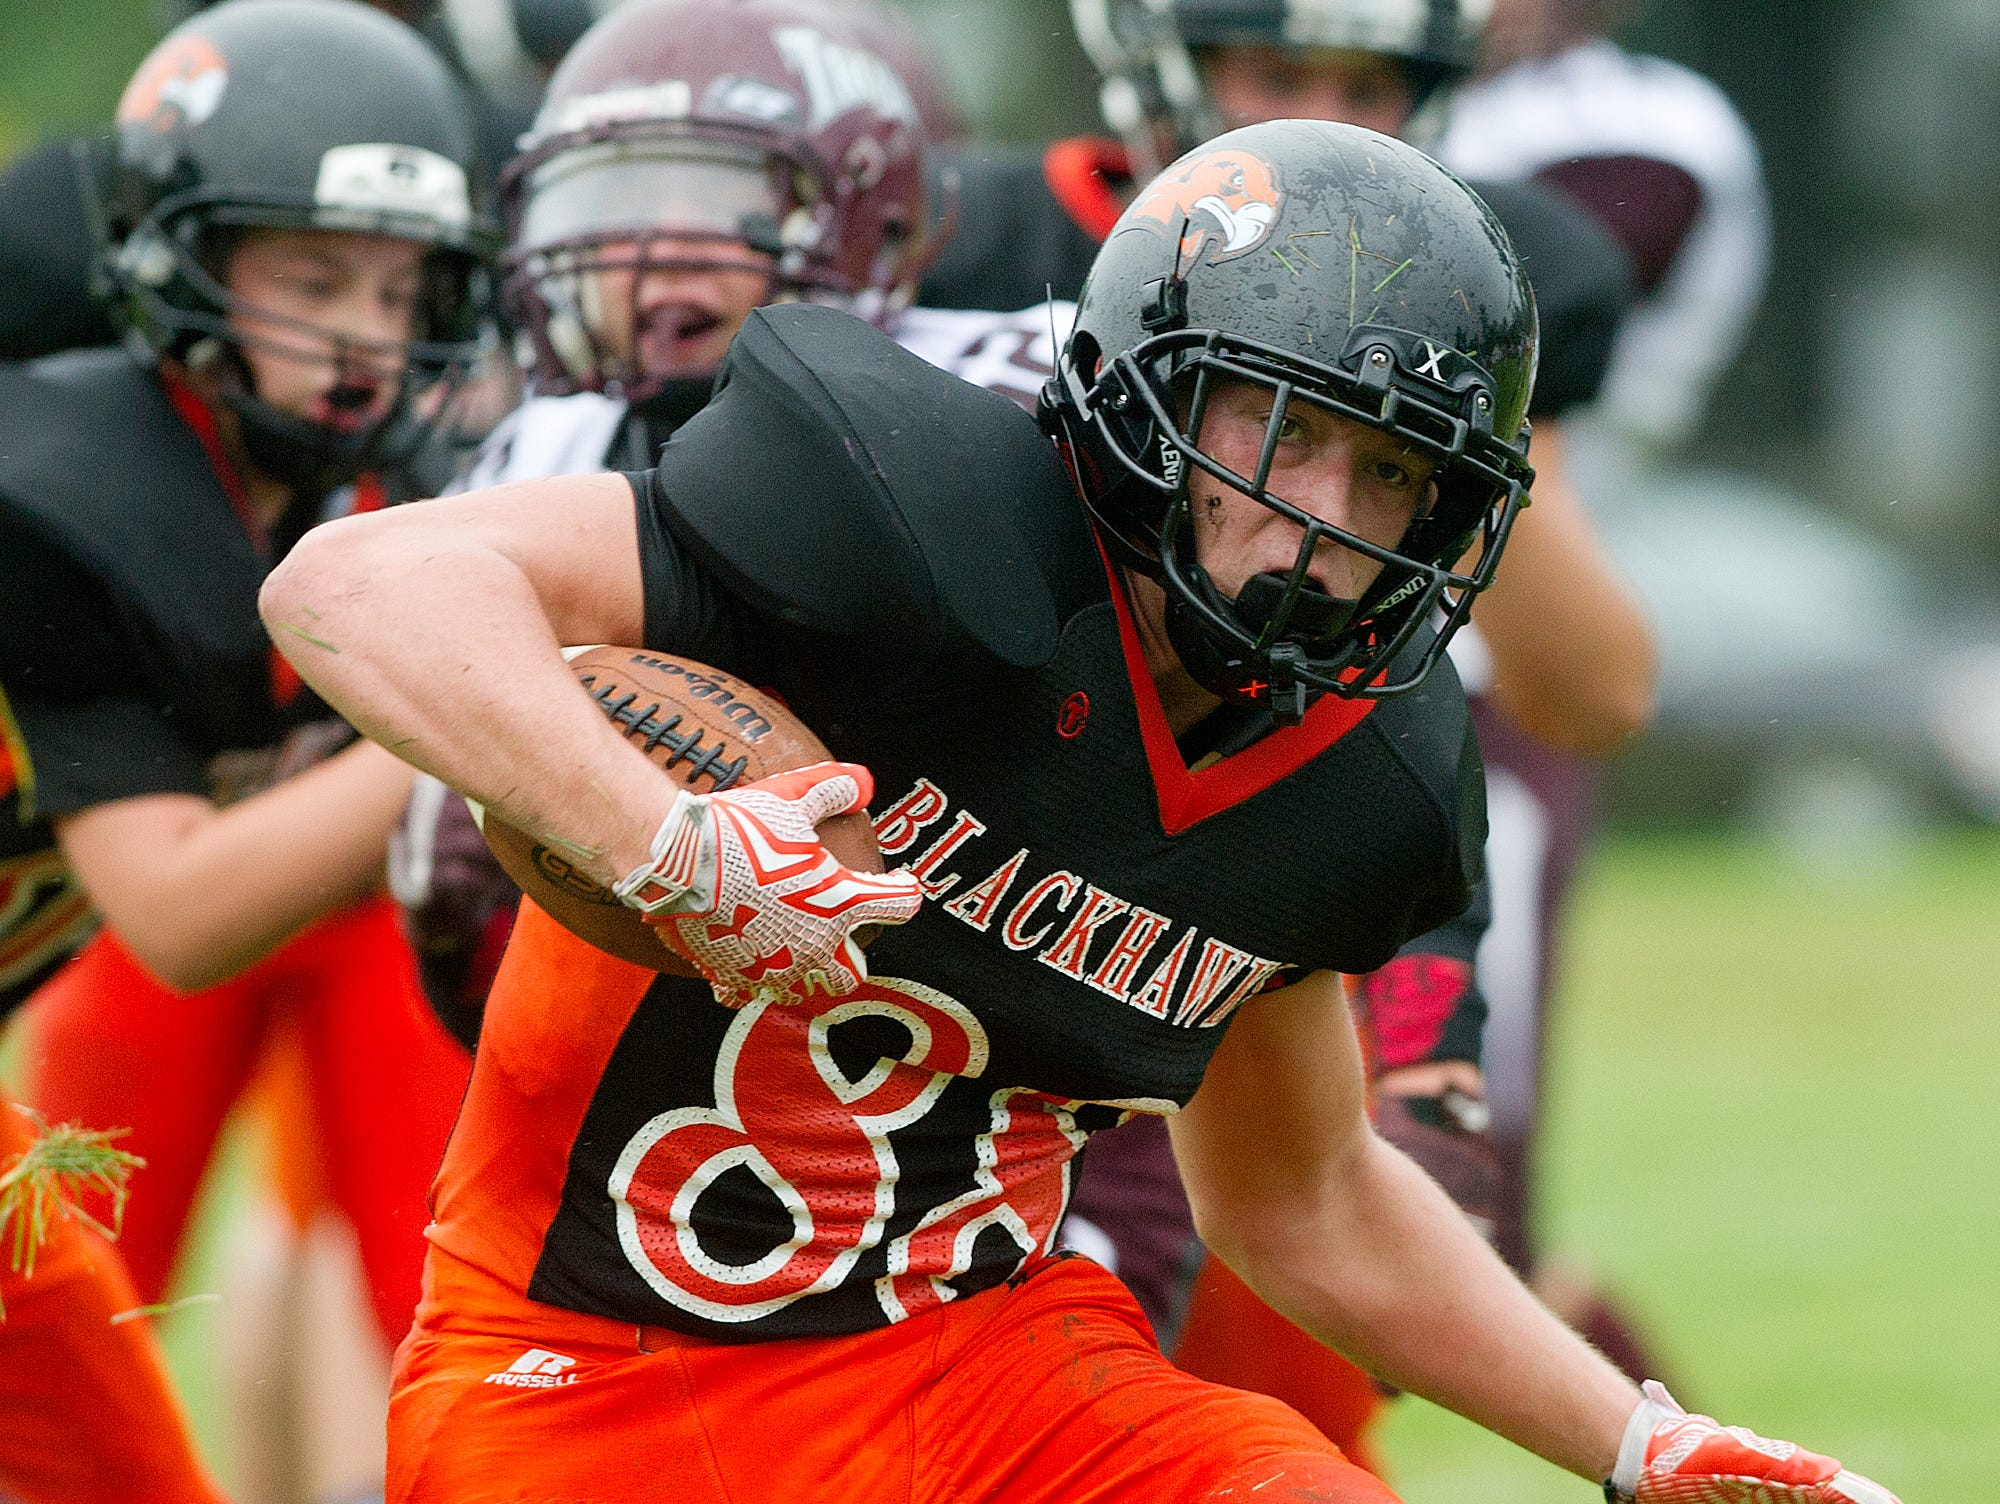 Port Edwards senior Ethan Saylor has made a seamless switch from wide receiver to halfback this football season.